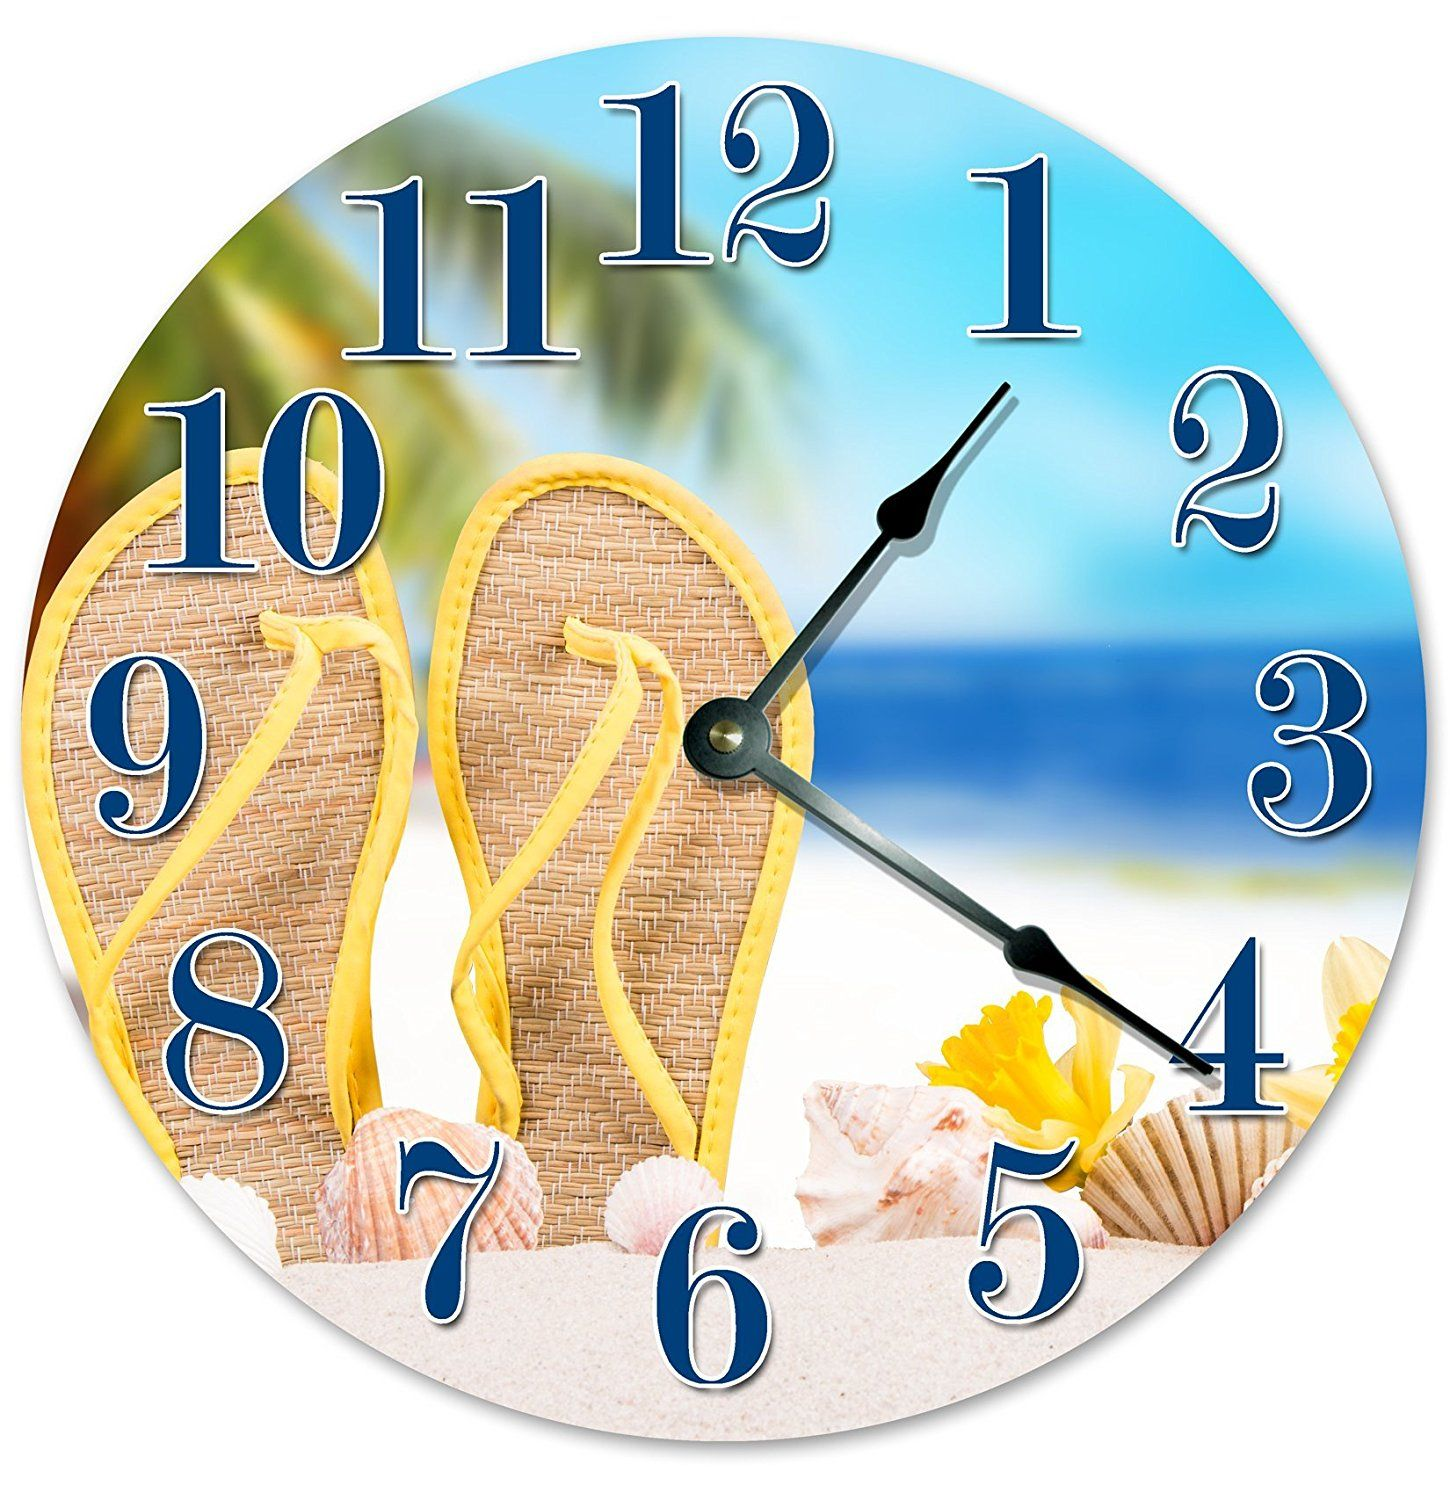 SANDALS IN THE SAND Unique Clock Large 10.5\' Wall Clock Decorative ...